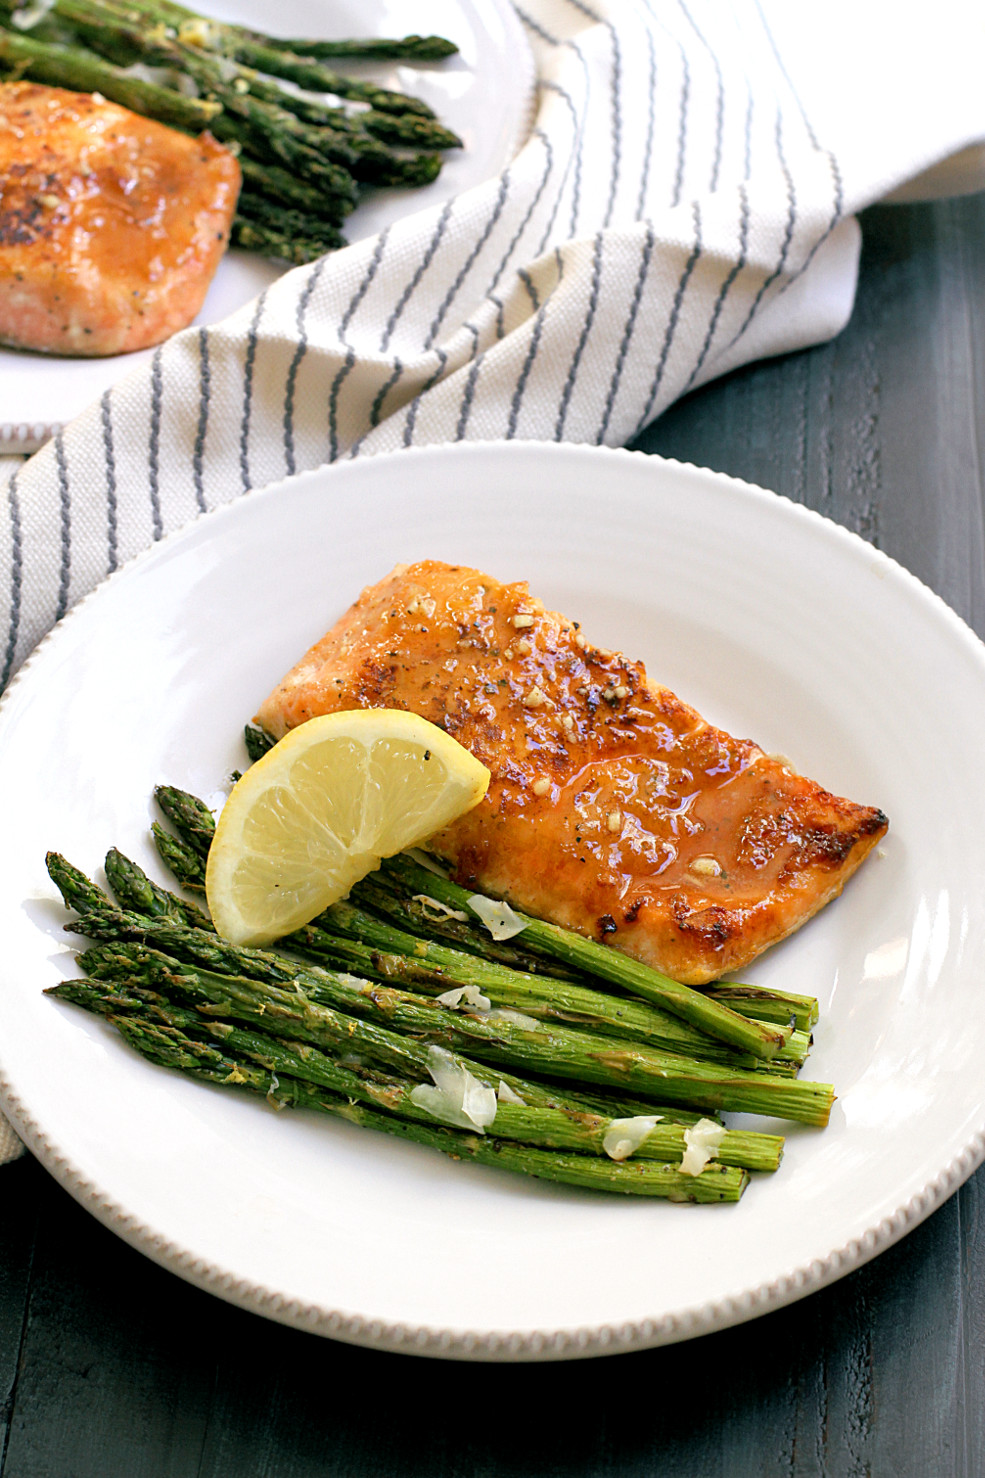 Asparagus And Salmon  Honey Glazed Salmon with Broiled Asparagus Two of a Kind